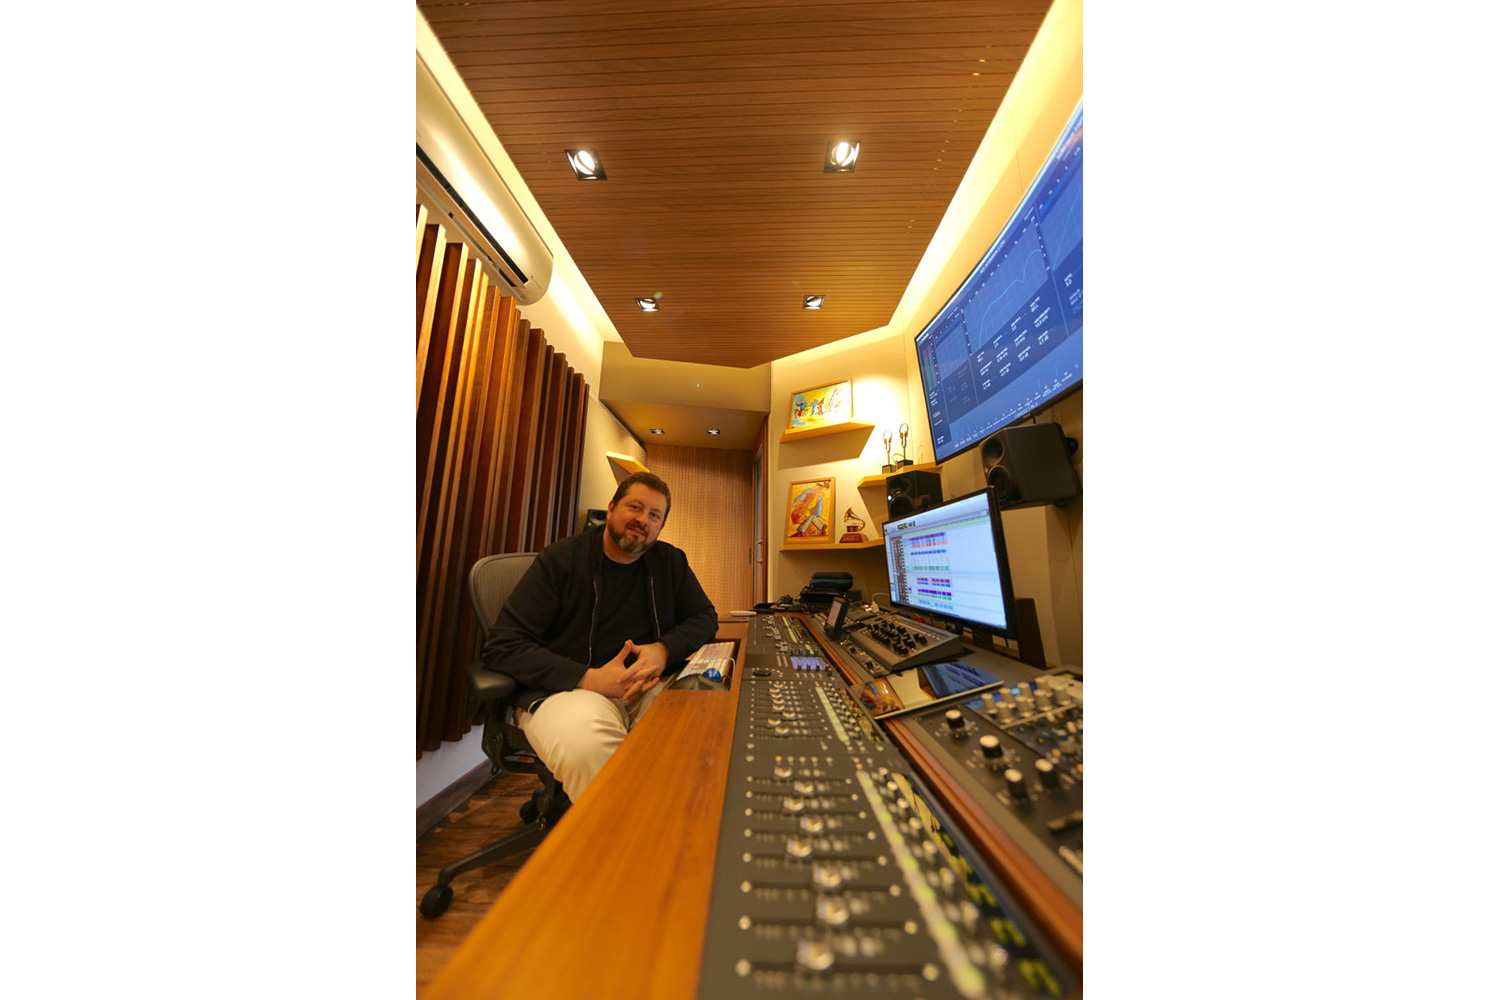 Mix2go is located in Sao Paulo, Brazil and is an innovative 3D mixing facility. WSDG was commissioned to design a space where 3D mixes audio could be created. Beto Neves at his control mixing room.